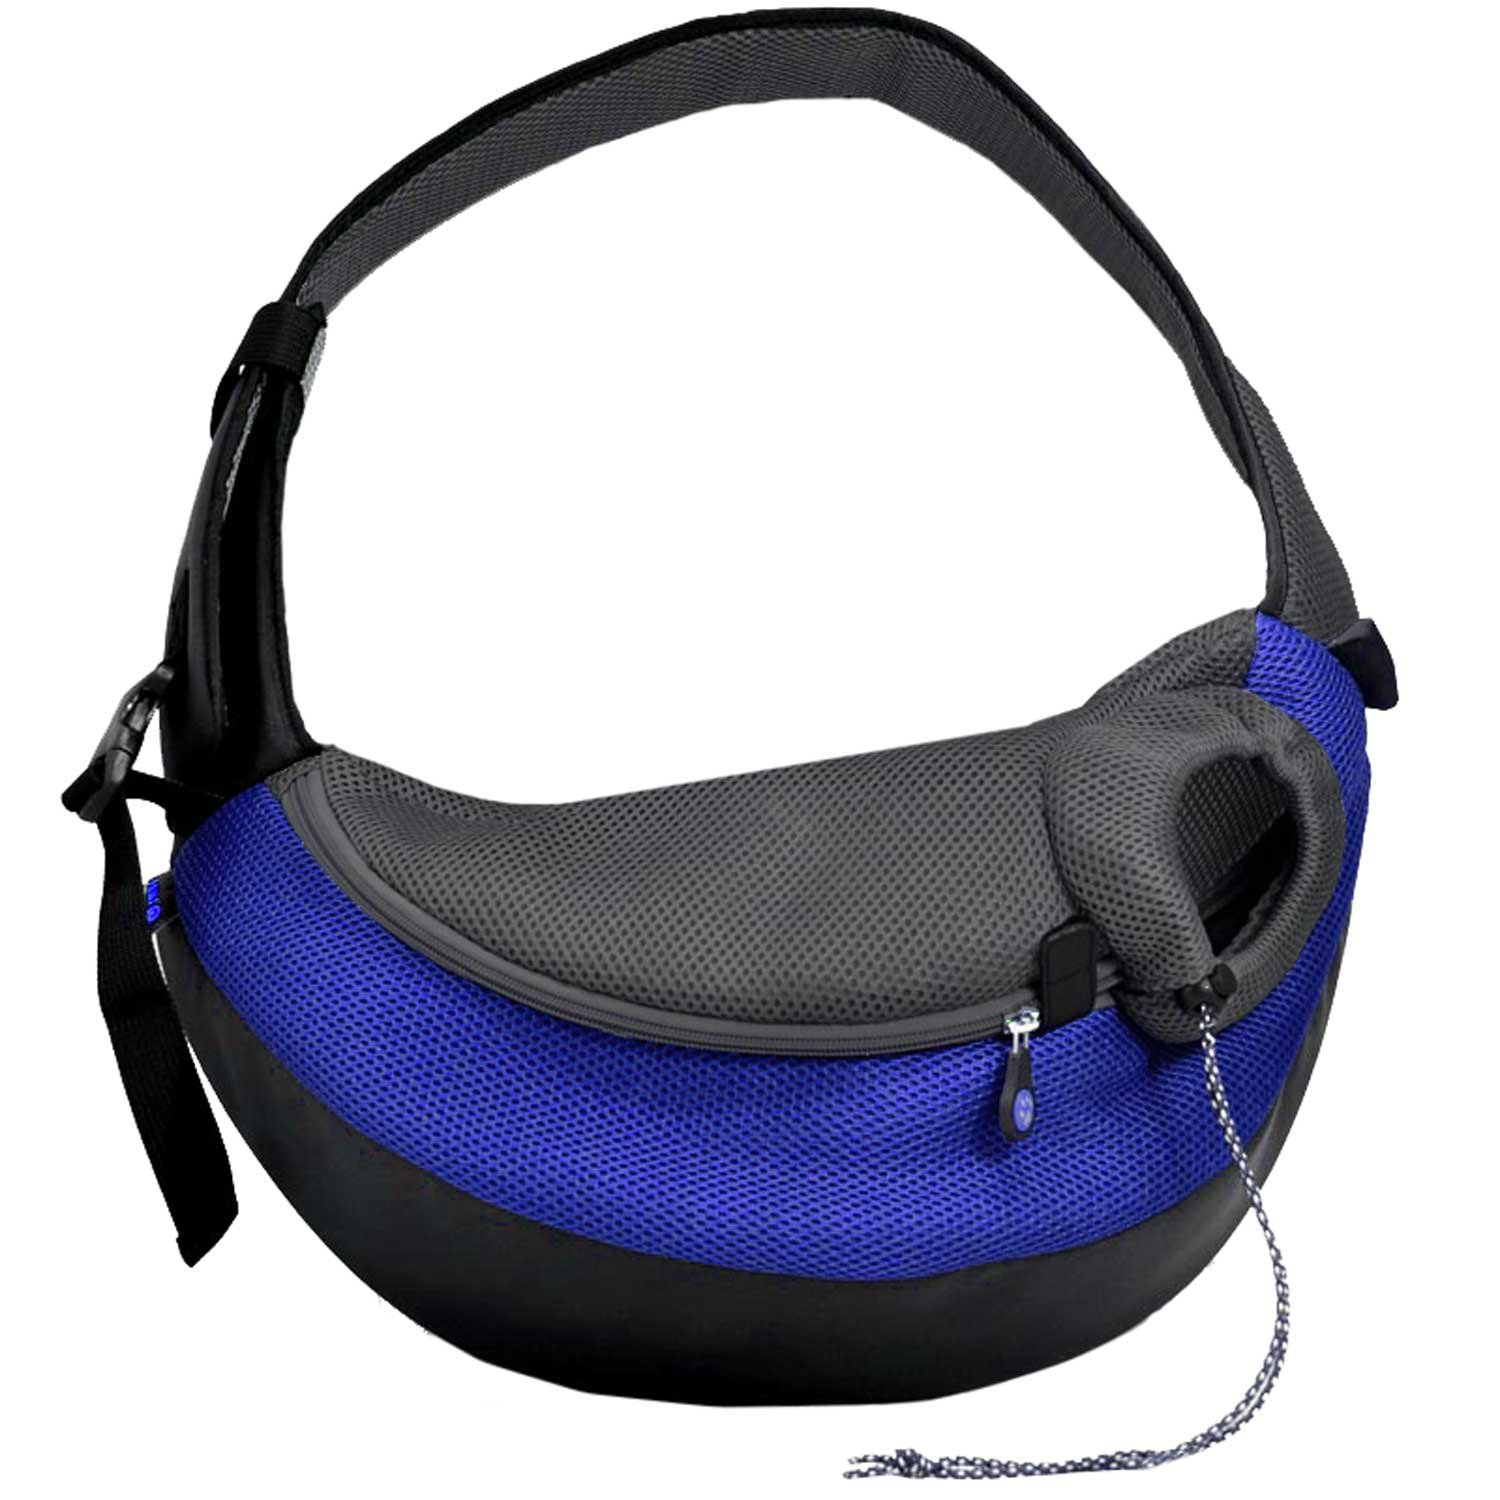 Wacky Paws Large Pet Sling Pet Carrier in Blue